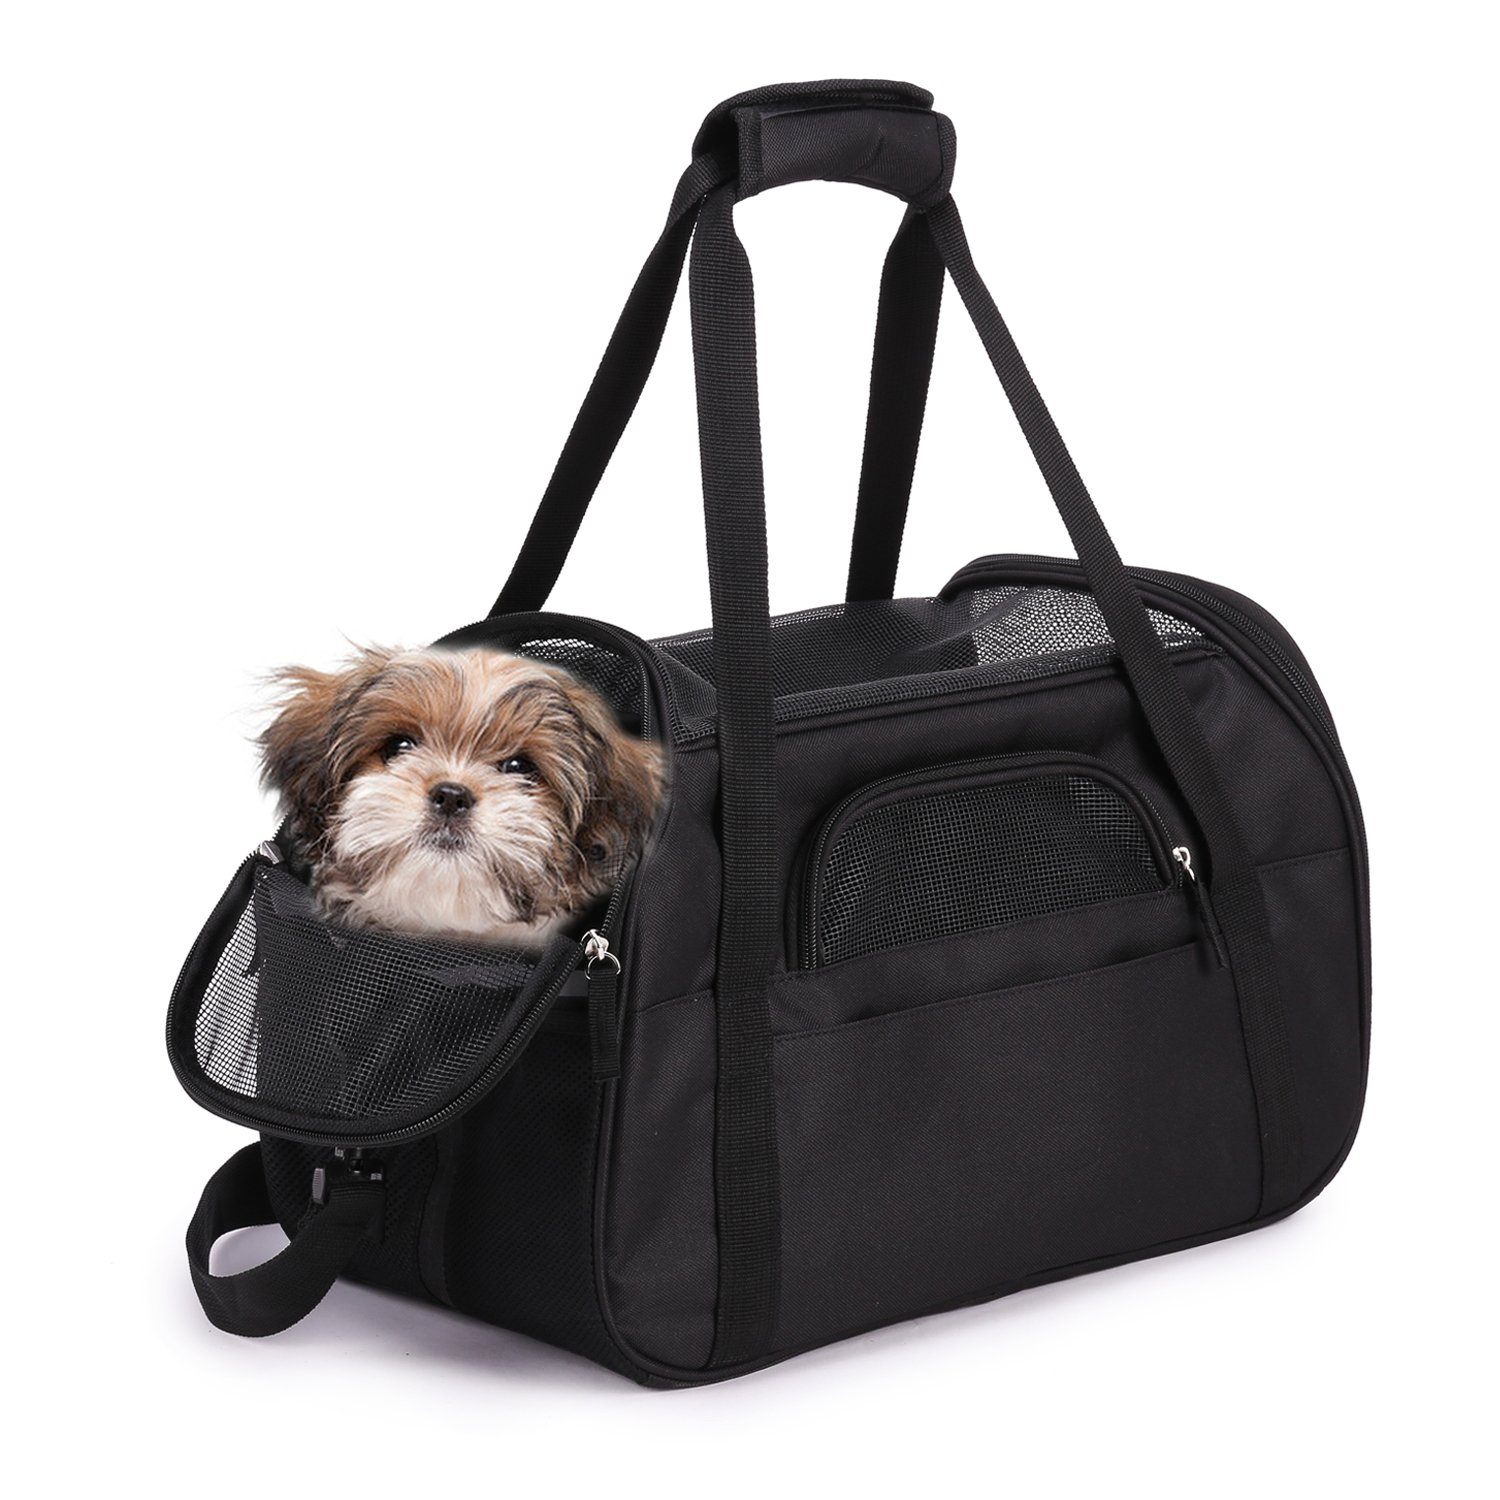 Jespet Soft Sided Pet Carrier Comfort 19'' for Airline Travel, Portable Dog Tote Bag for Small Animals, Cats, Kitten, Puppy, Black